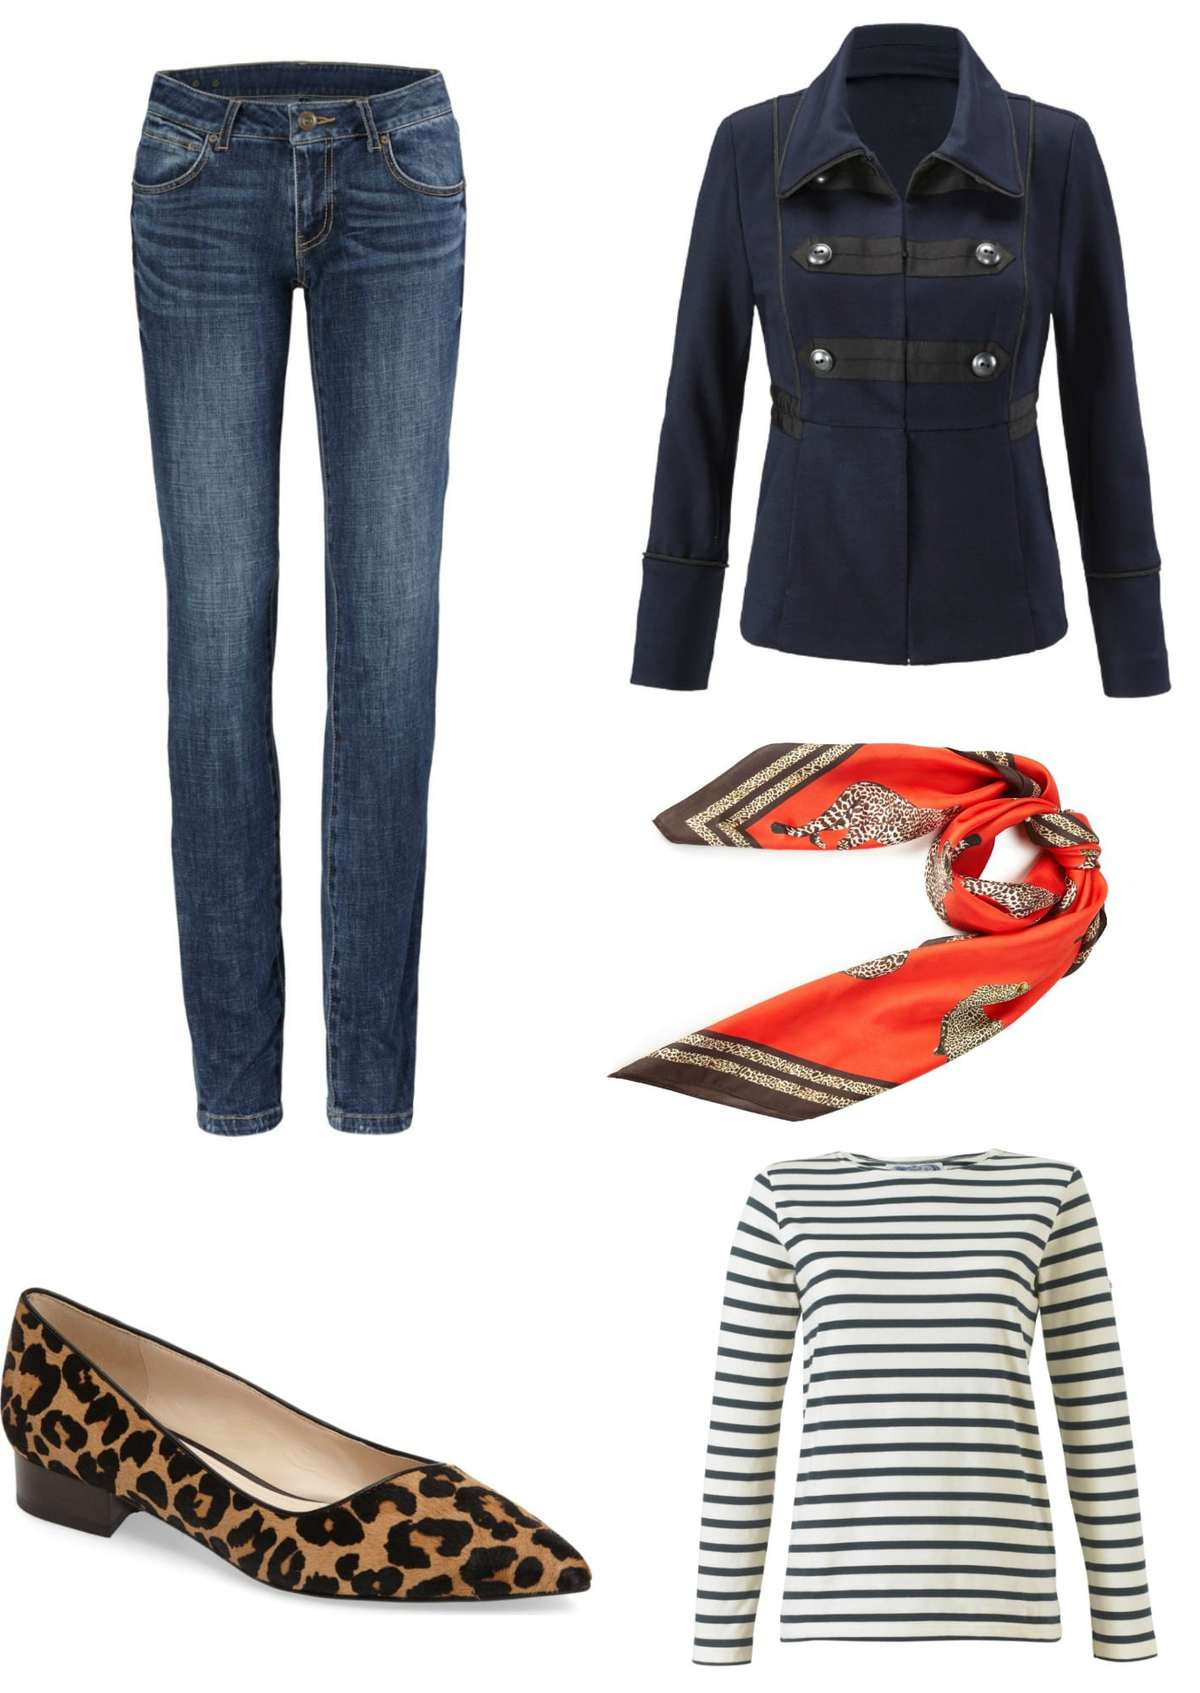 cabi In The Band Jacket styled with the cabi Dover jeans, Deidre scarf, a Breton tee, and Cole Haan Heidy leopard calfhair flats